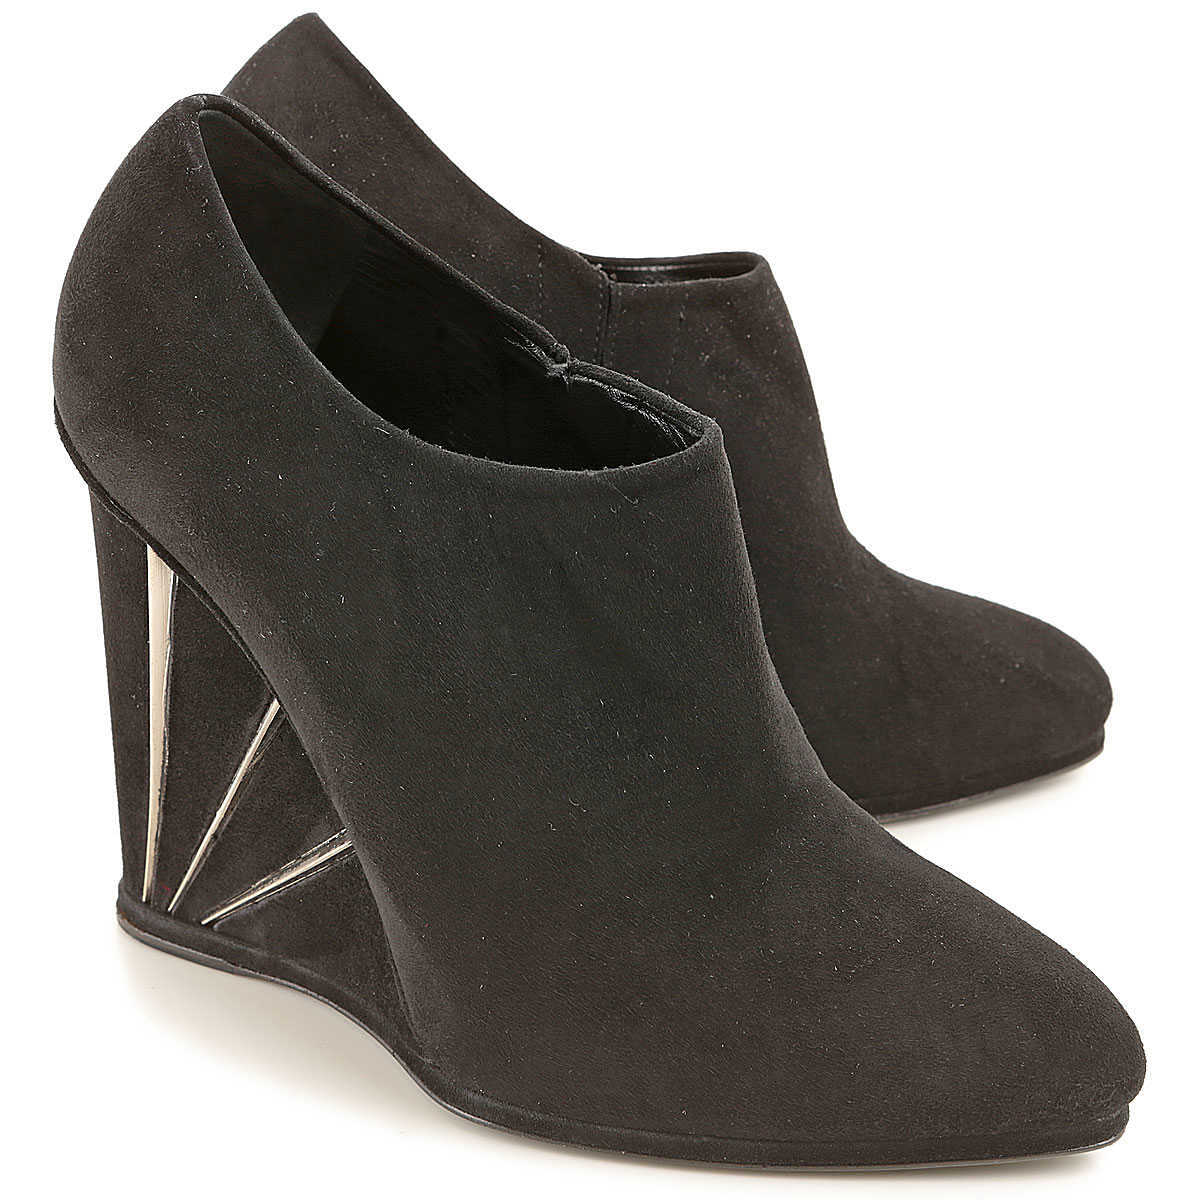 Stuart Weitzman Wedges for Women On Sale in Outlet Black DK - GOOFASH - Womens HOUSE SHOES